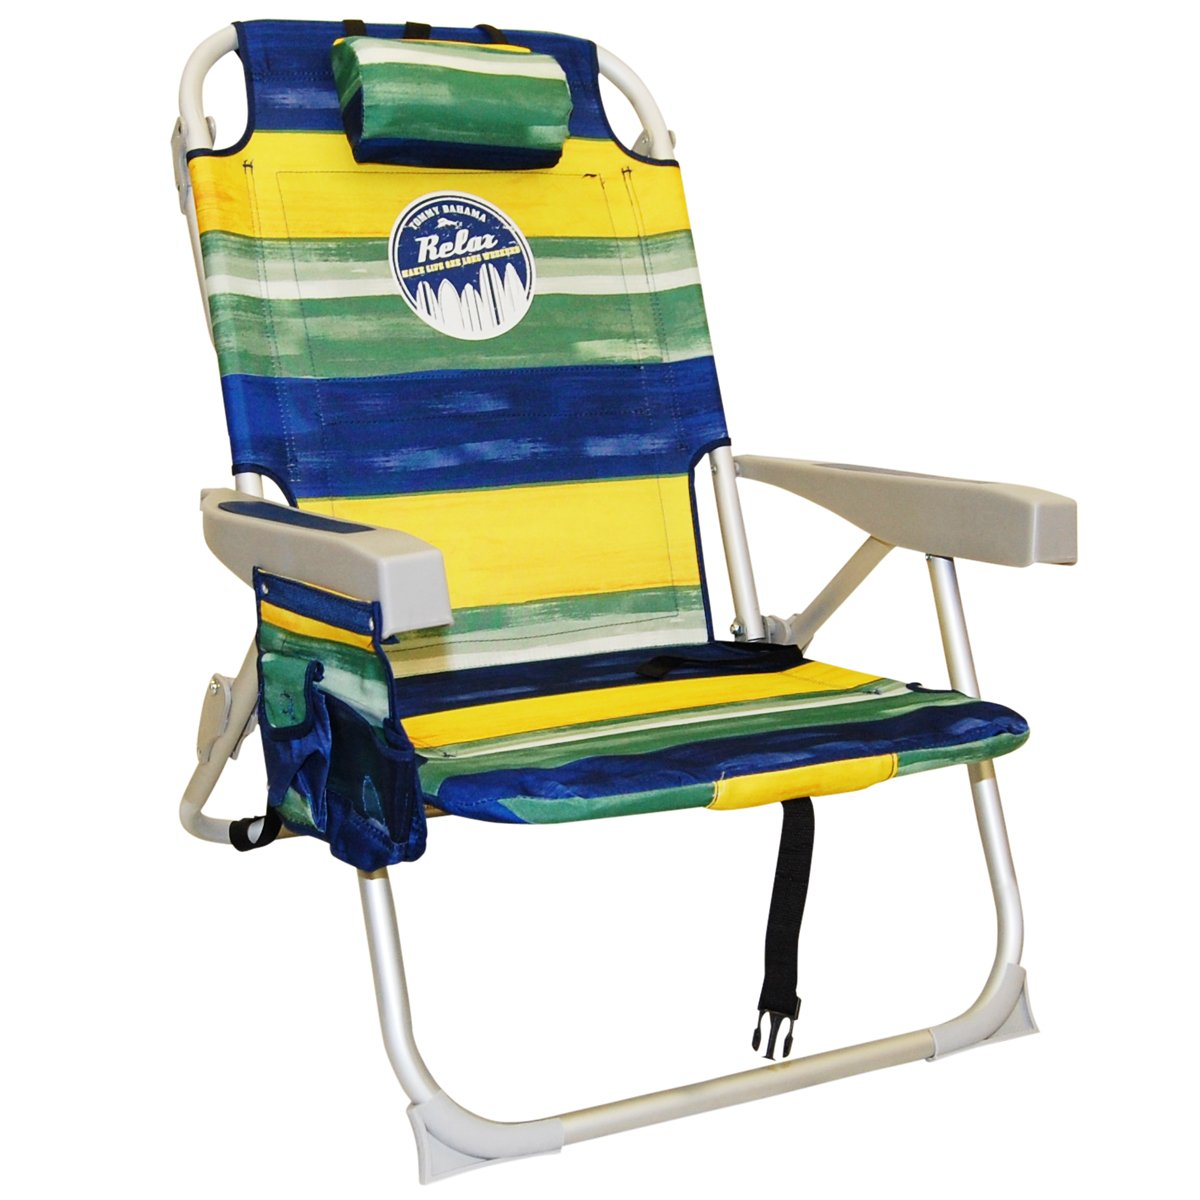 Top 10 Best Tommy Bahama Beach Chairs and Umbrellas Reviews 2016 2017 on Flipboard